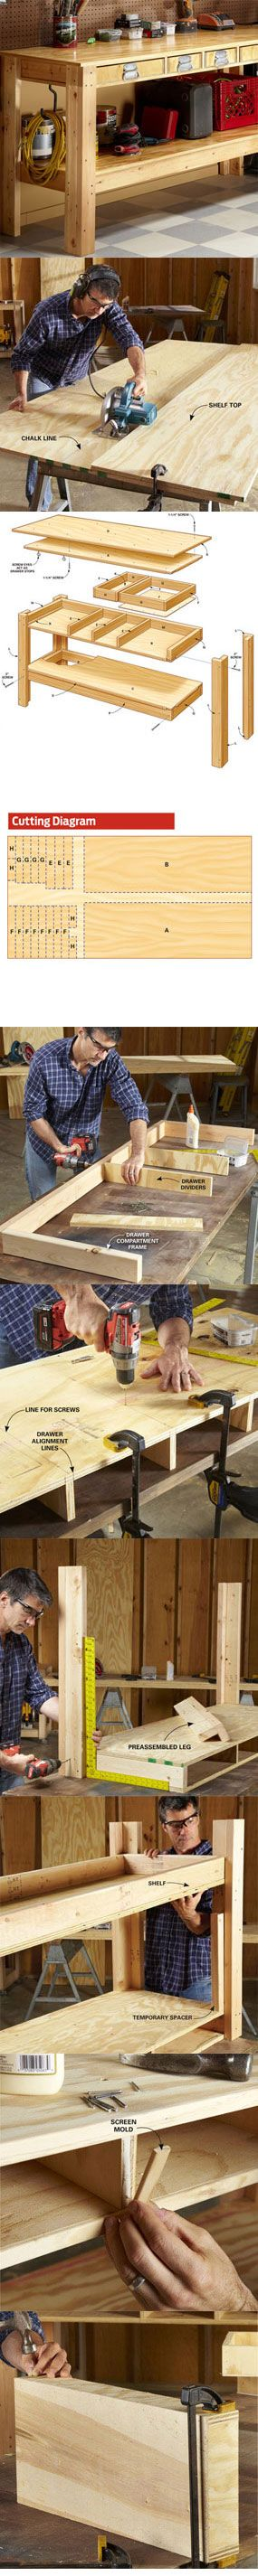 Workbench Plans Use this simple workbench plan to build a sturdy, tough workbench that'll last f...